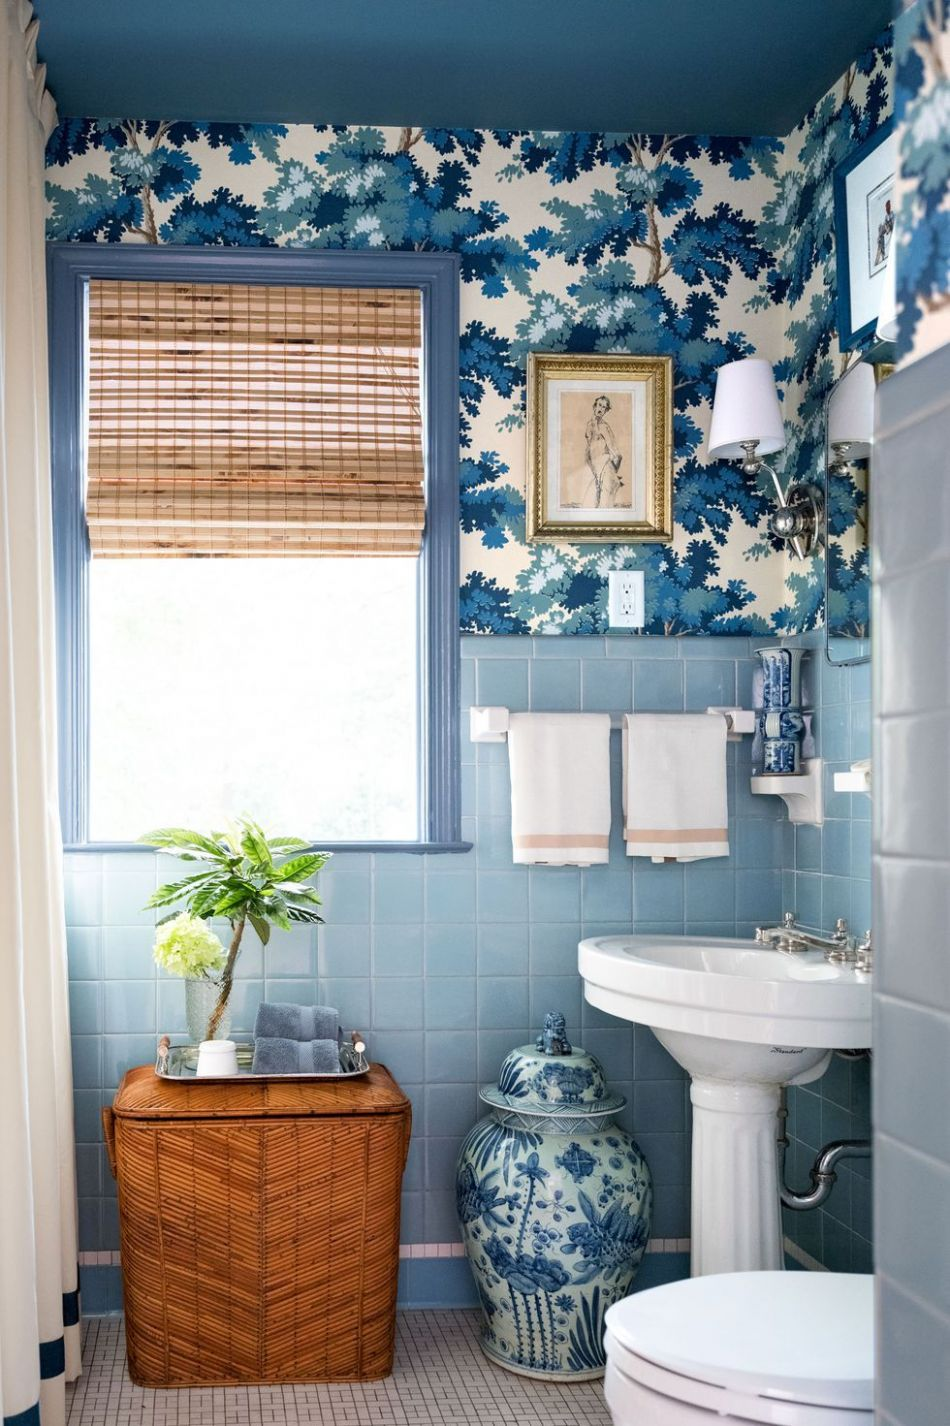 11+ Best Bathroom Designs - Photos of Beautiful Bathroom Ideas to Try